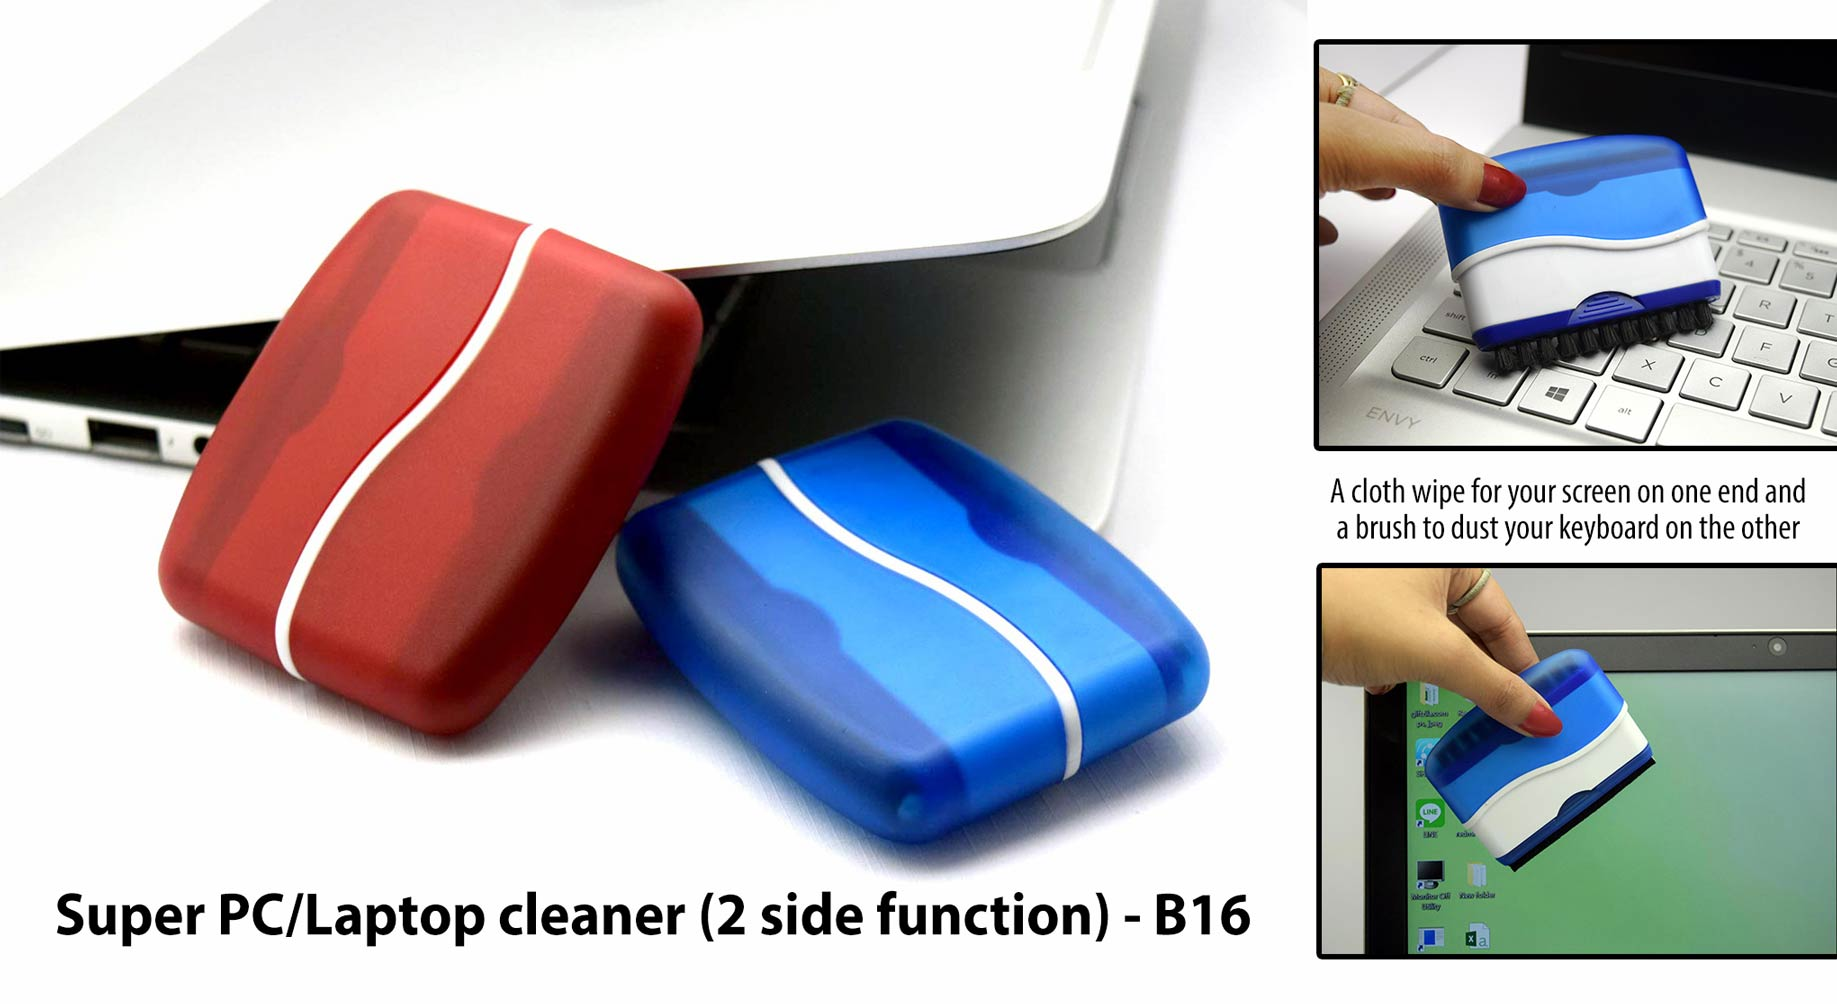 GB16 Super PC/Laptop cleaner (2 side function)